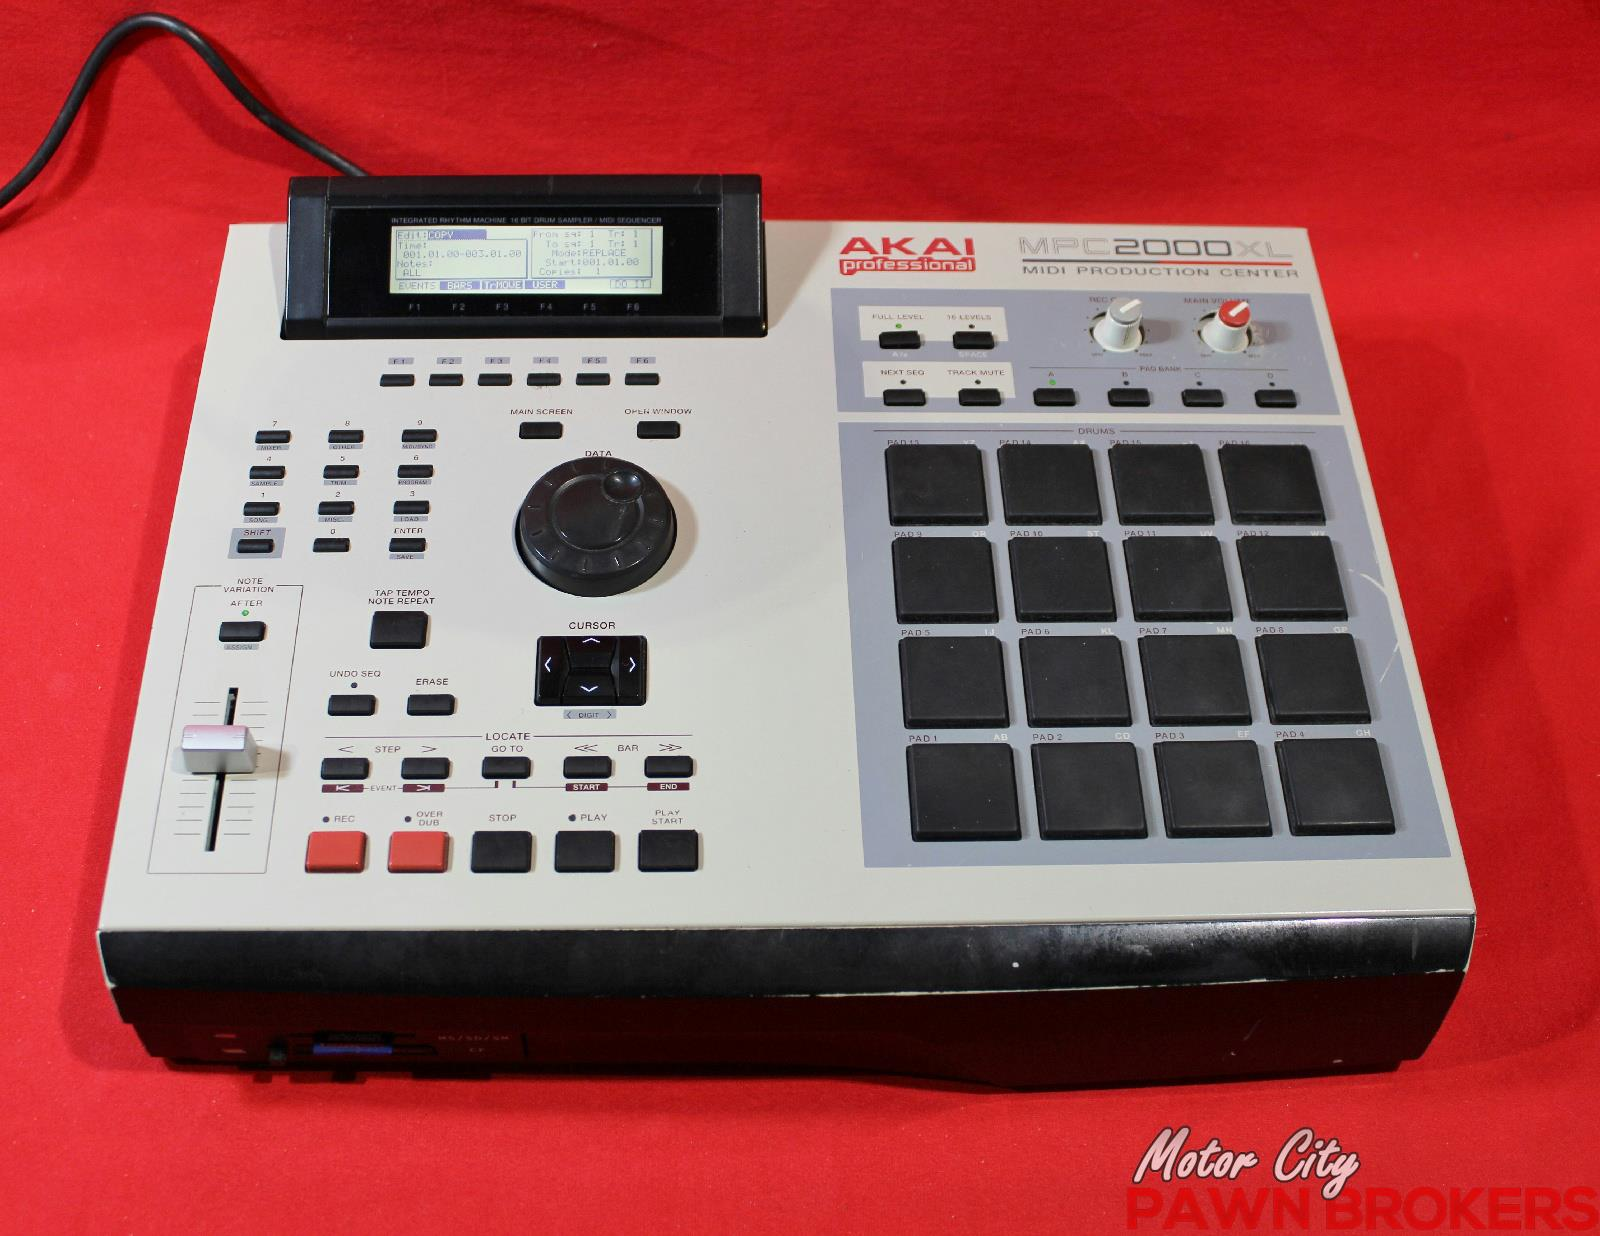 akai mpc2000xl upgraded 16 pads midi production drum machine sampler ebay. Black Bedroom Furniture Sets. Home Design Ideas